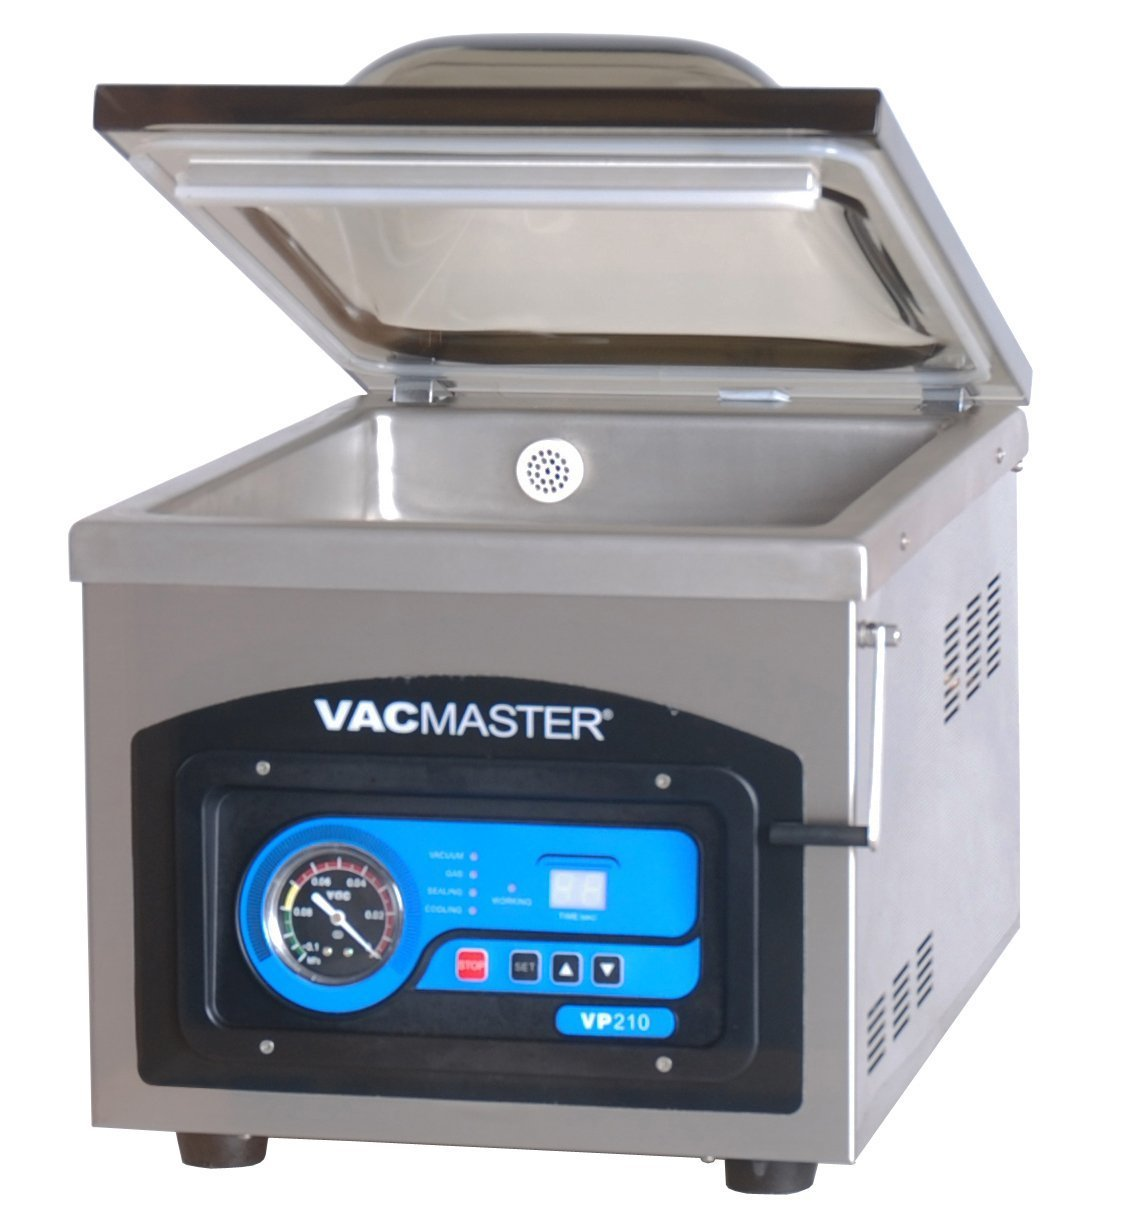 VacMaster VP210 – Best Chamber Vacuum Sealer Review